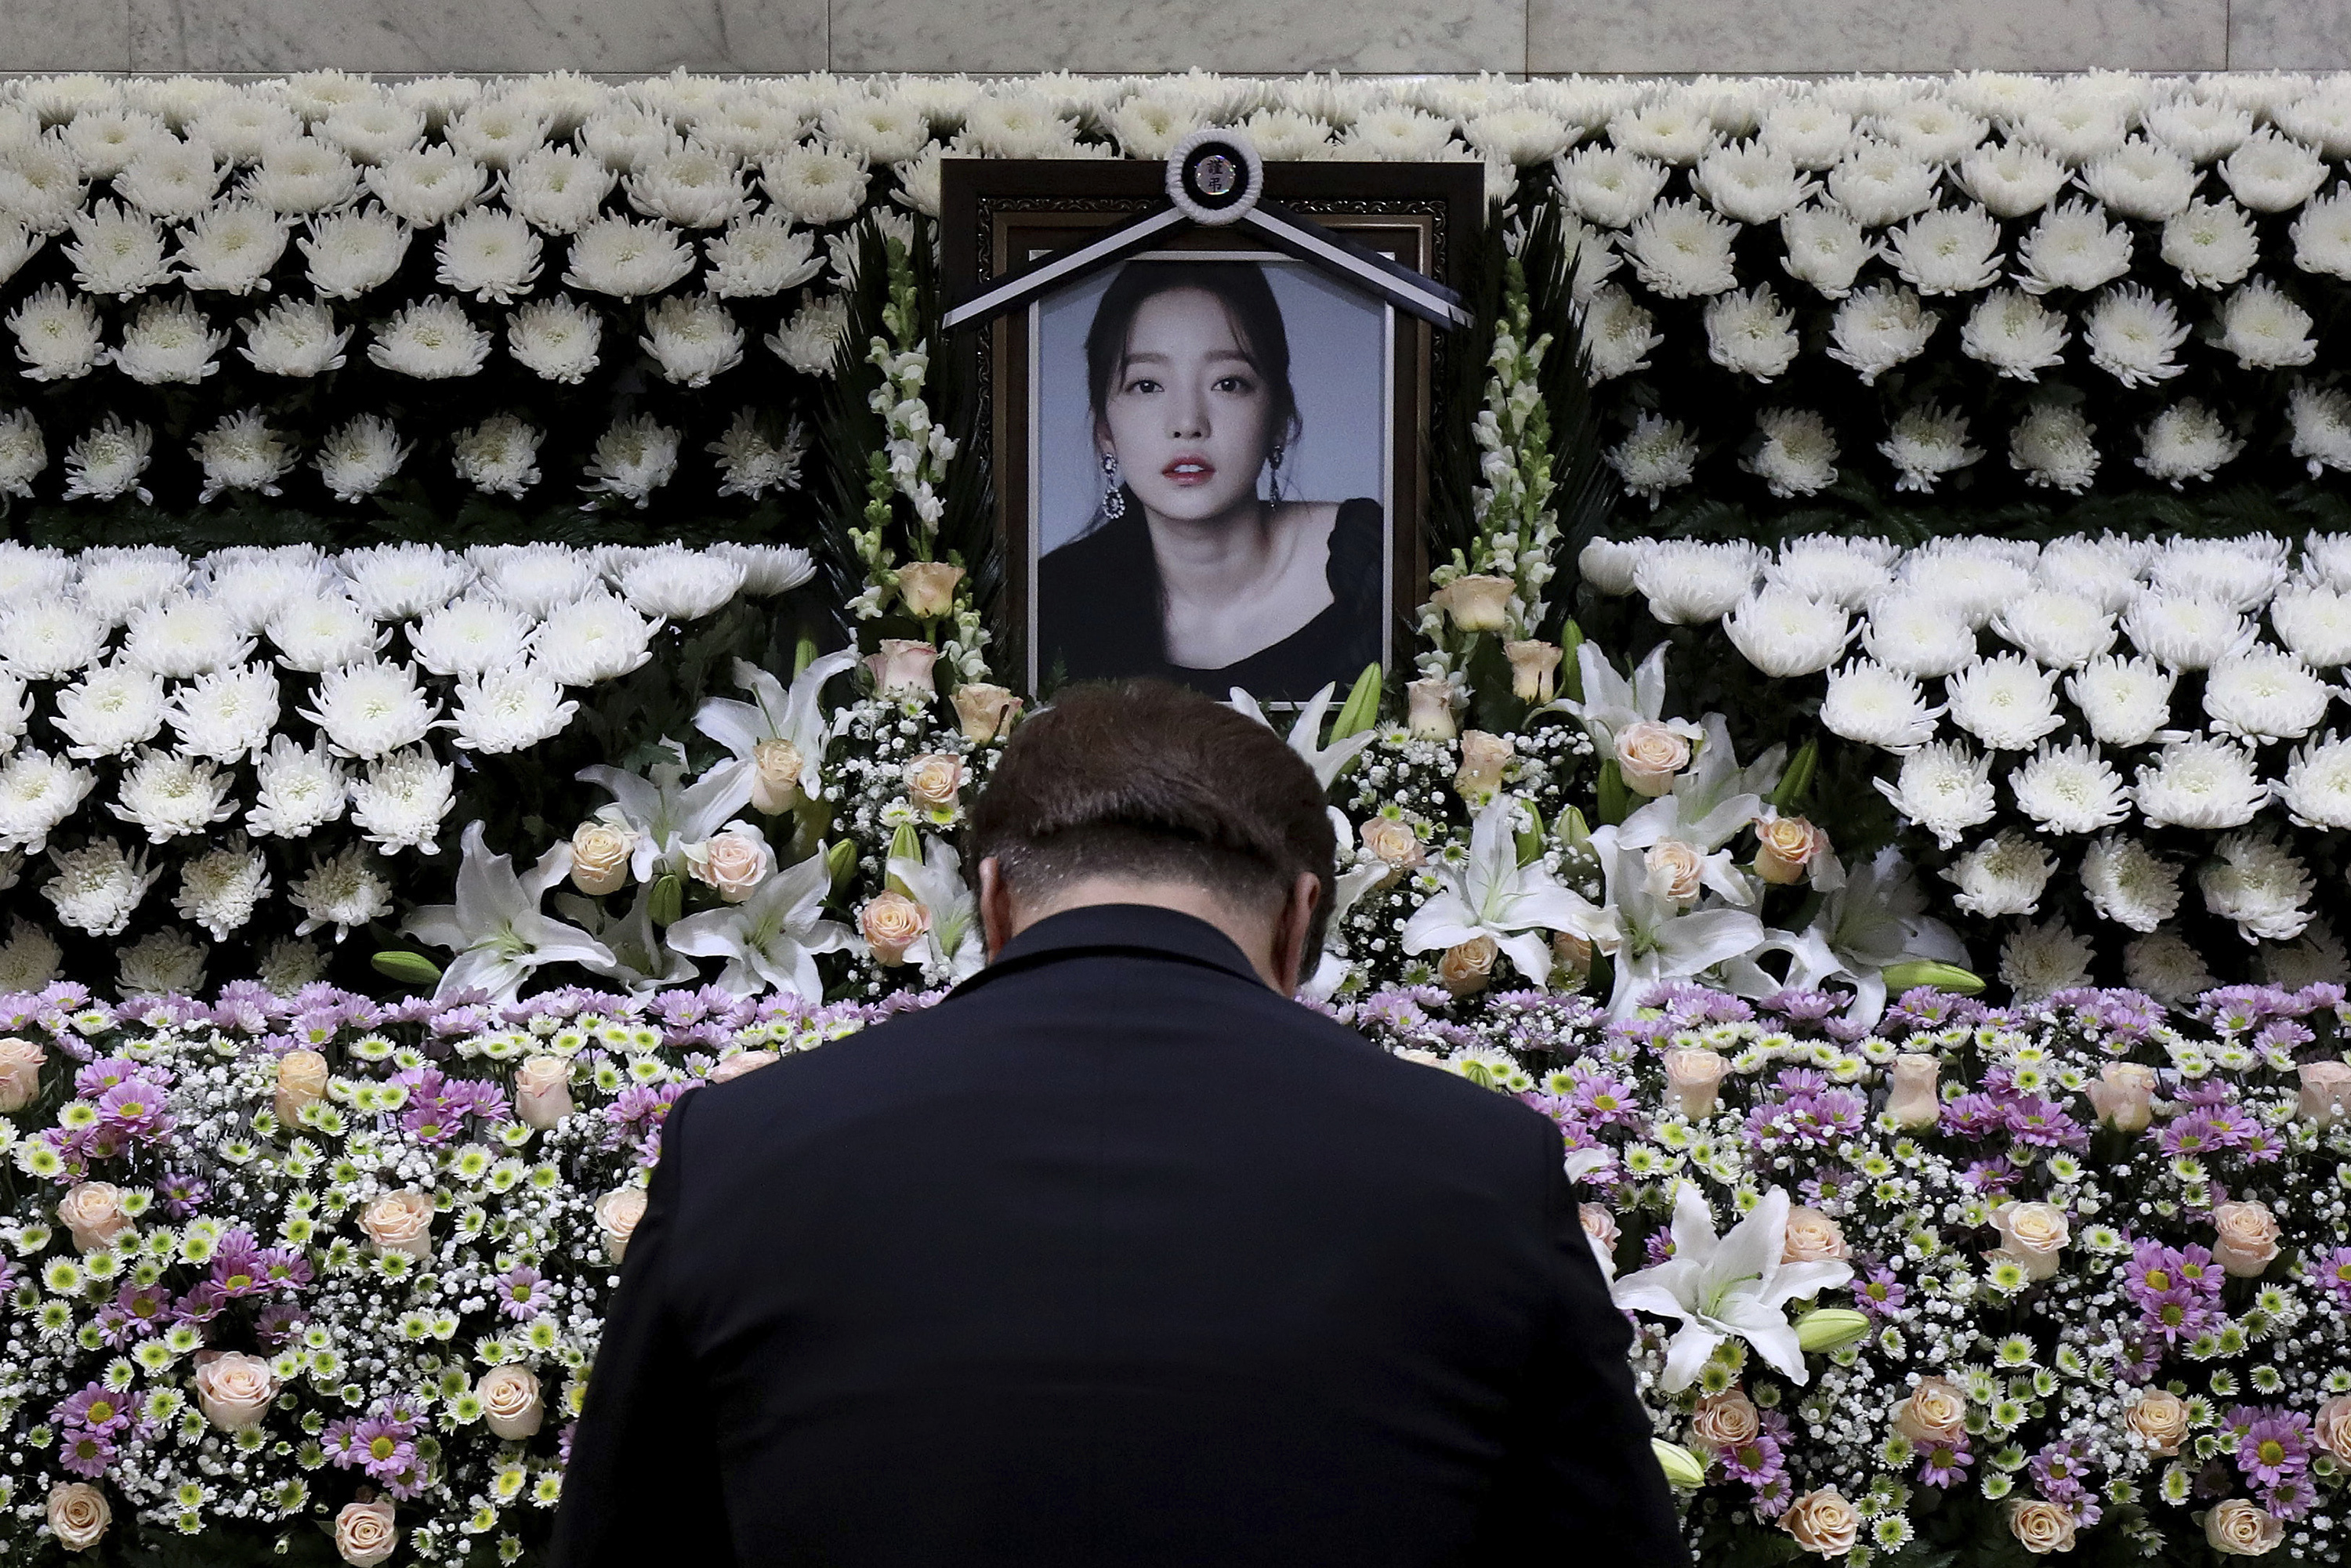 A South Korean man pays tribute to K-pop star Goo Hara at a memorial altar at the Seoul St. Mary's Hospital in Seoul on Nov. 25, 2019.